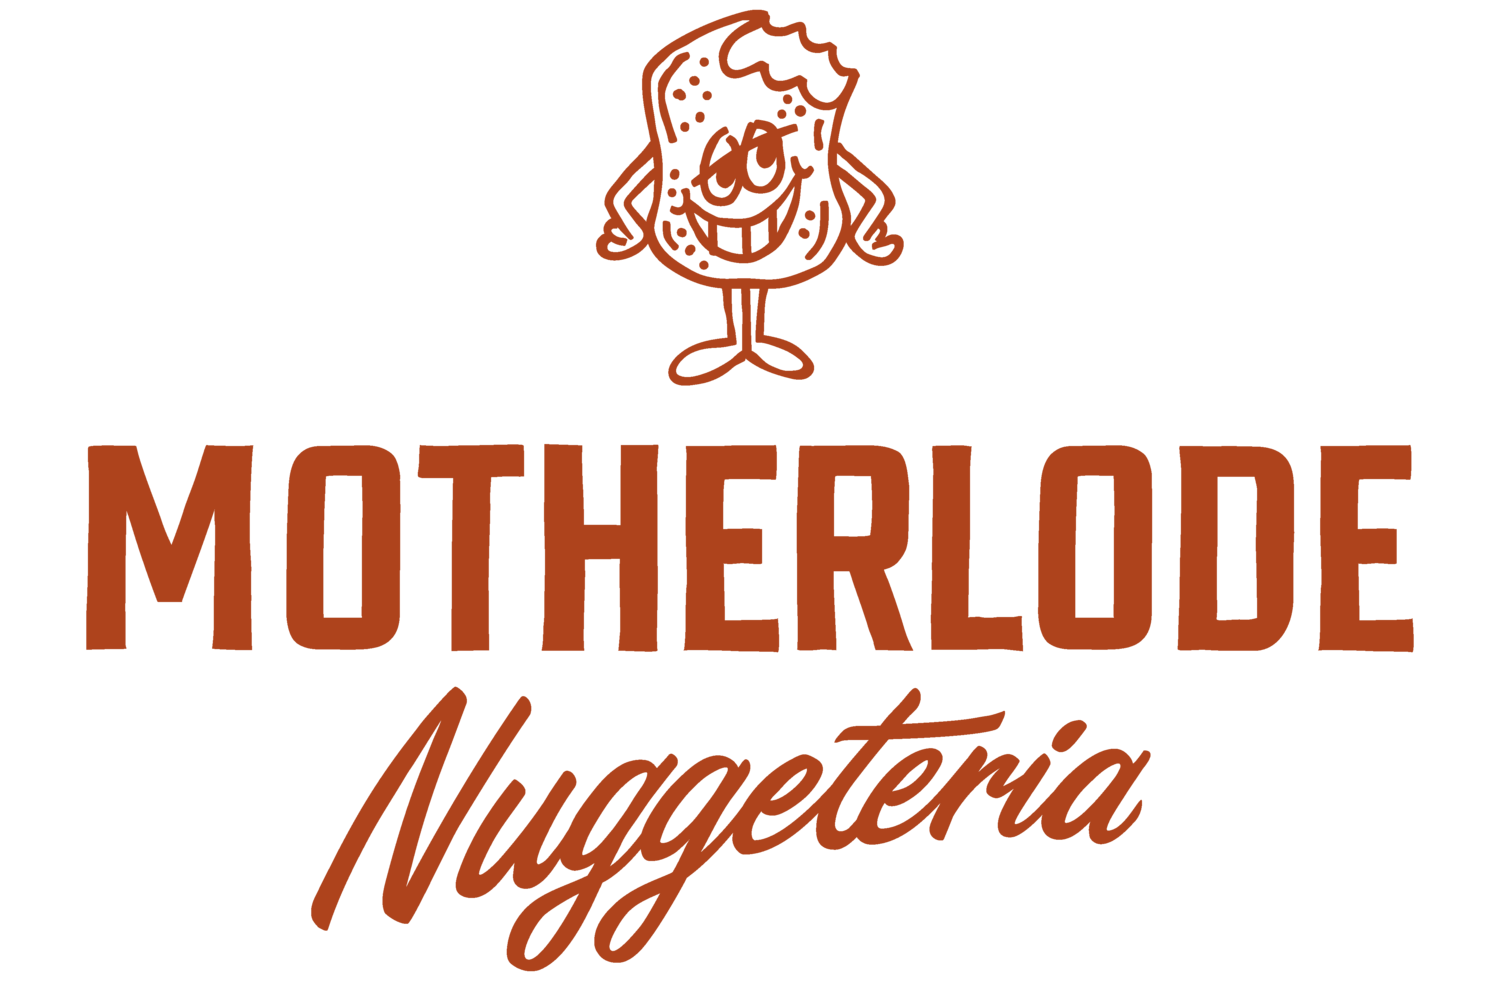 Motherlode Nuggeteria